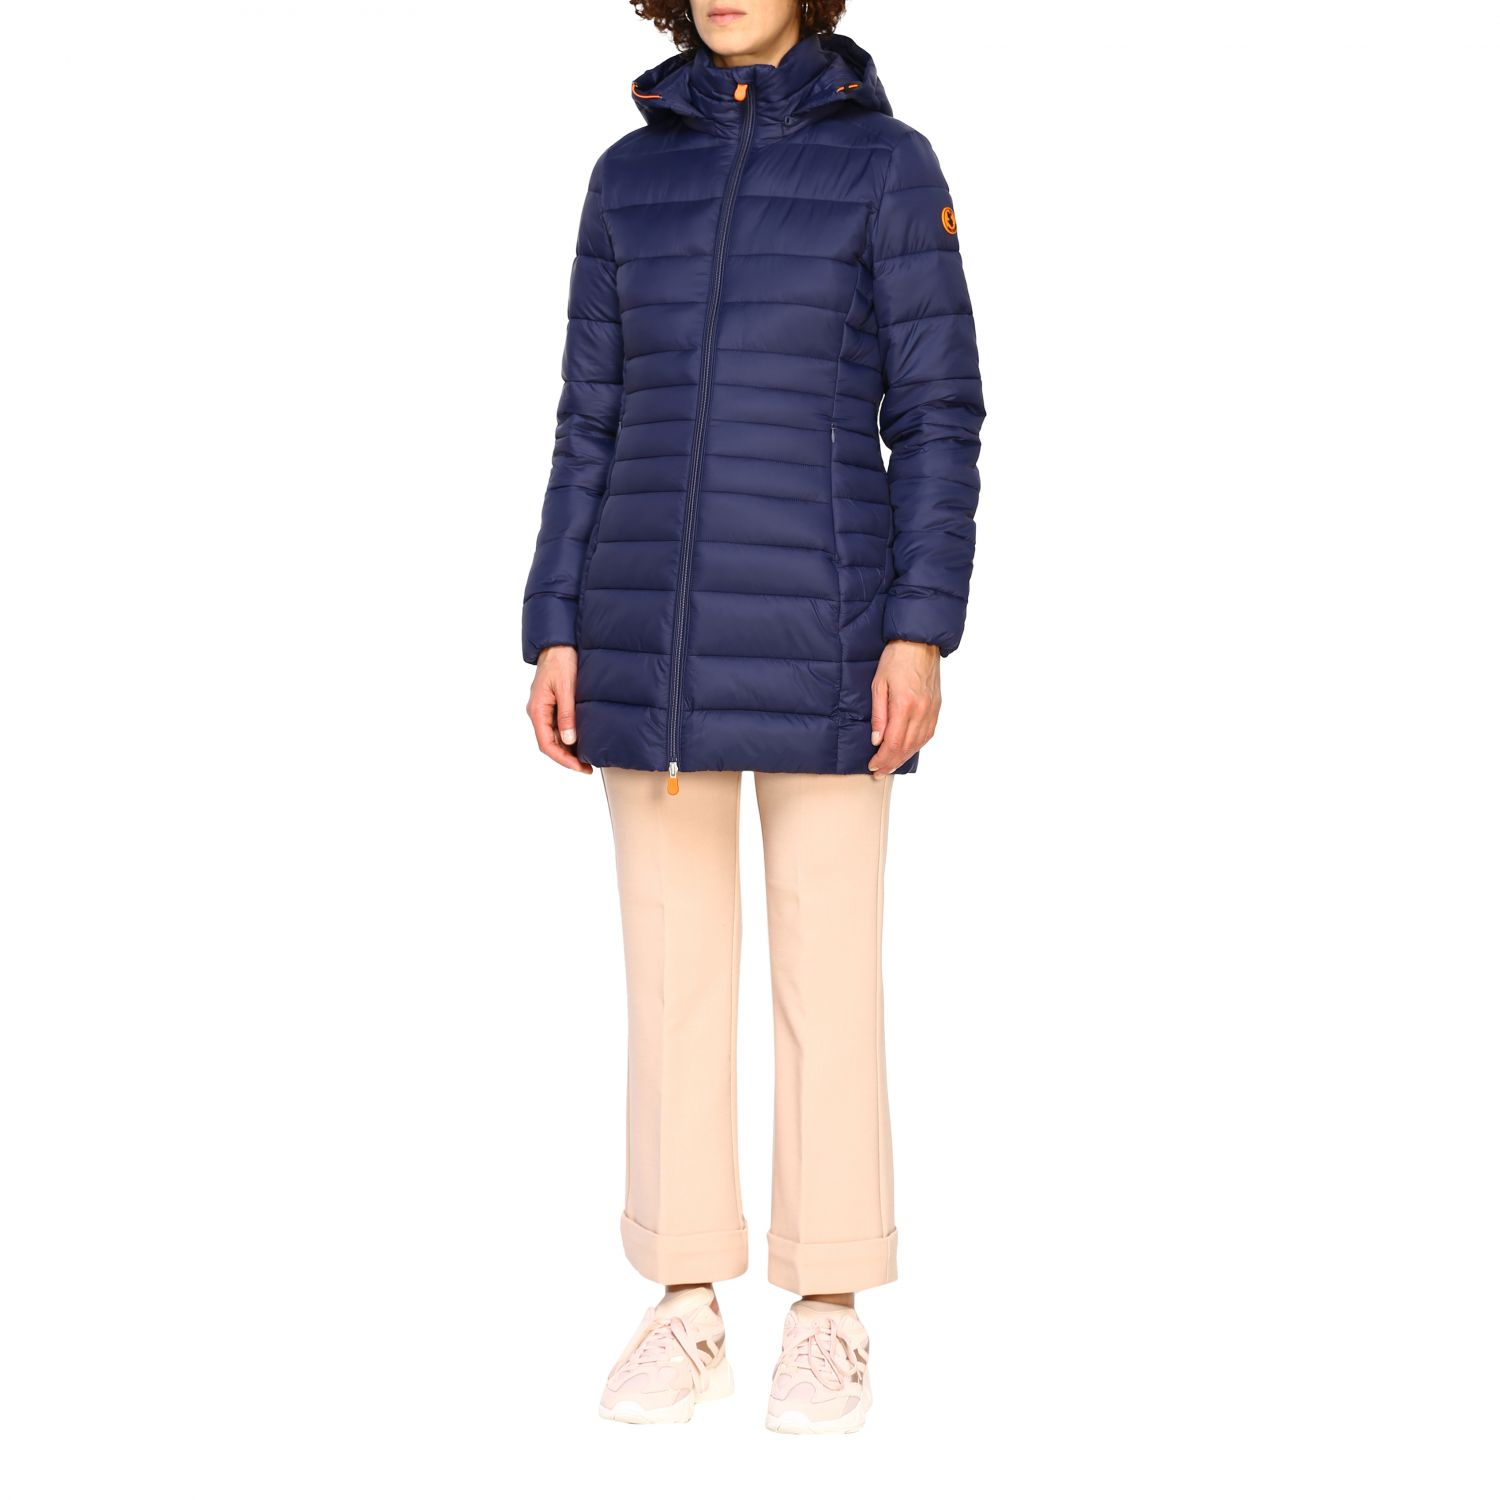 Giacca Save The Duck: Cappotto donna Save The Duck blue navy 4